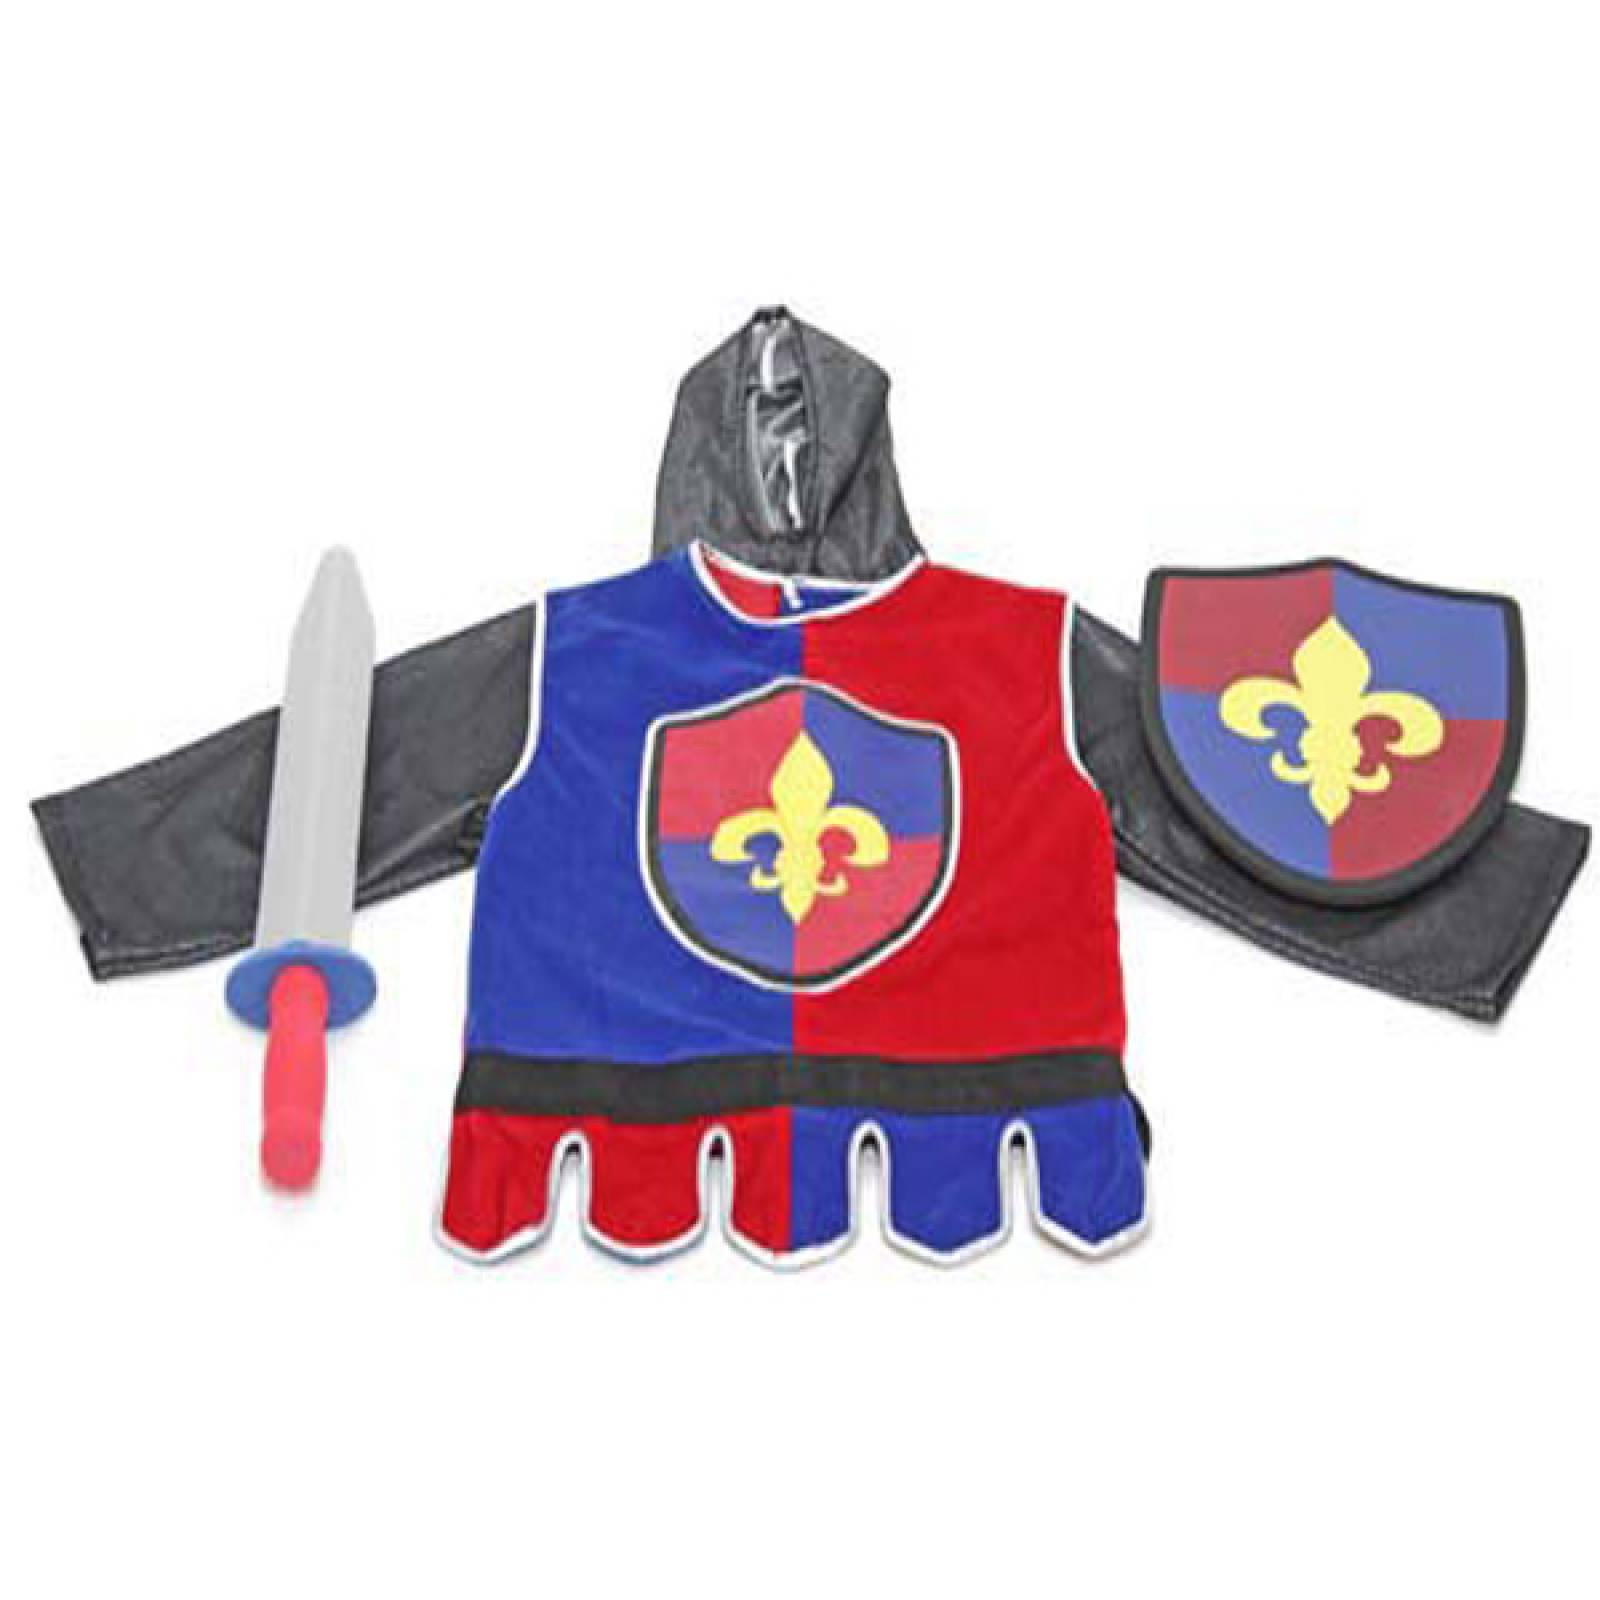 Fancy Dress Role Play Costume Set - Knight thumbnails